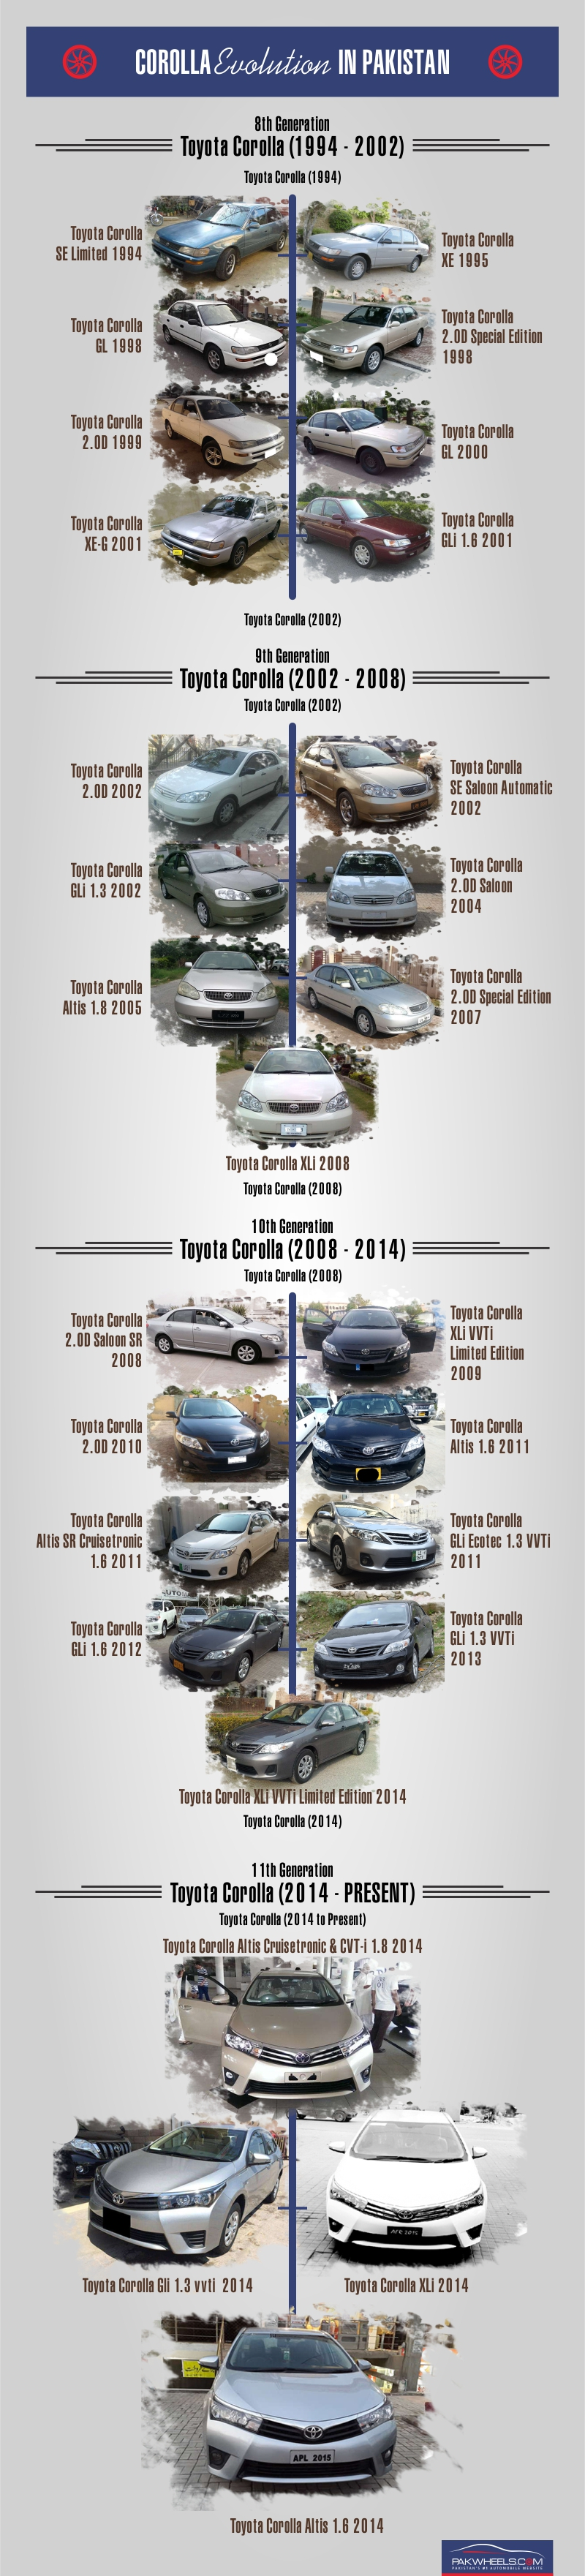 Corolla Evolution Infographic